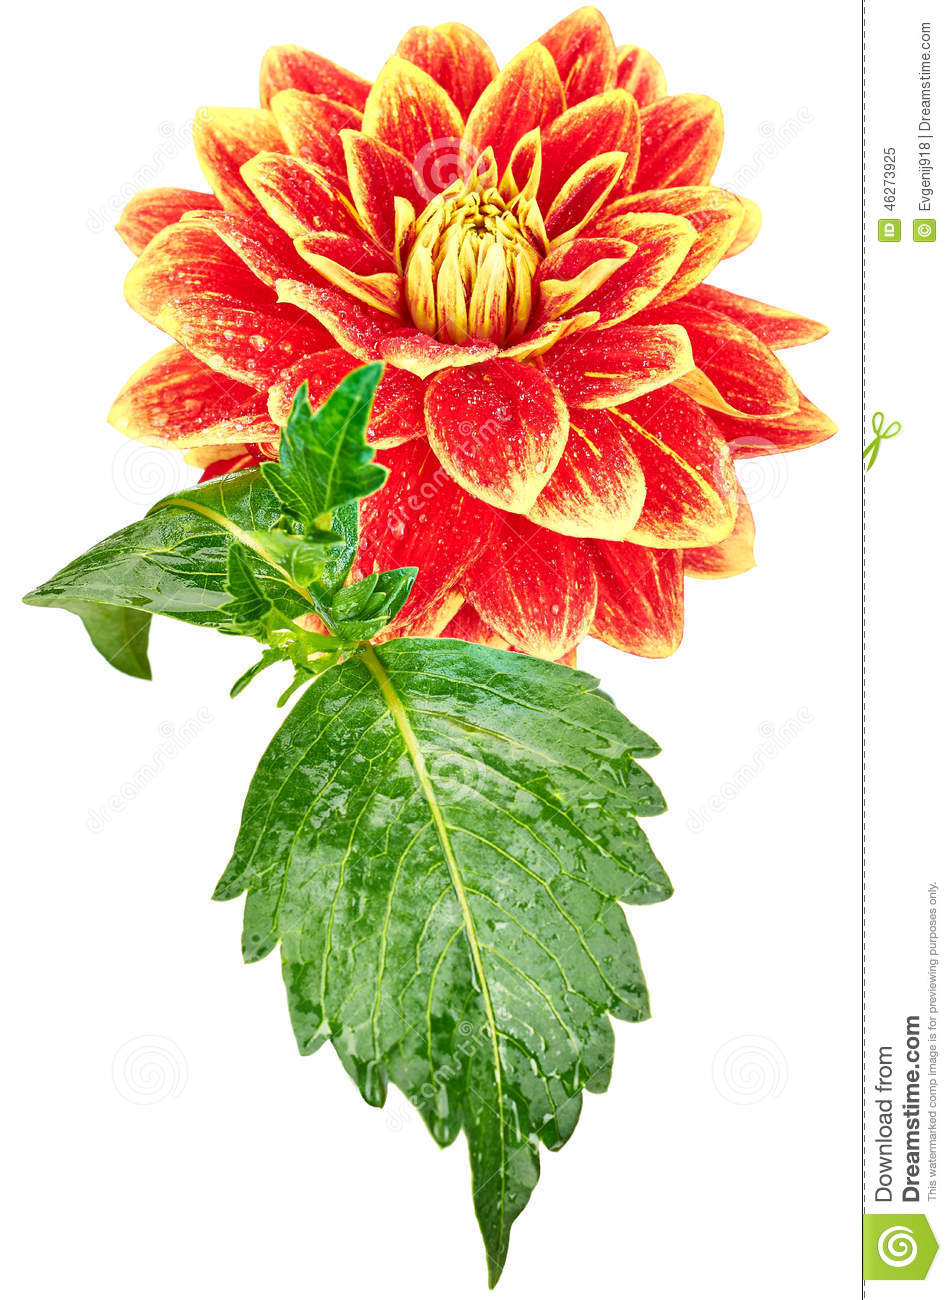 Dahlia orange yellow colored flower with leaves stock image dahlia orange yellow colored flower with leaves izmirmasajfo